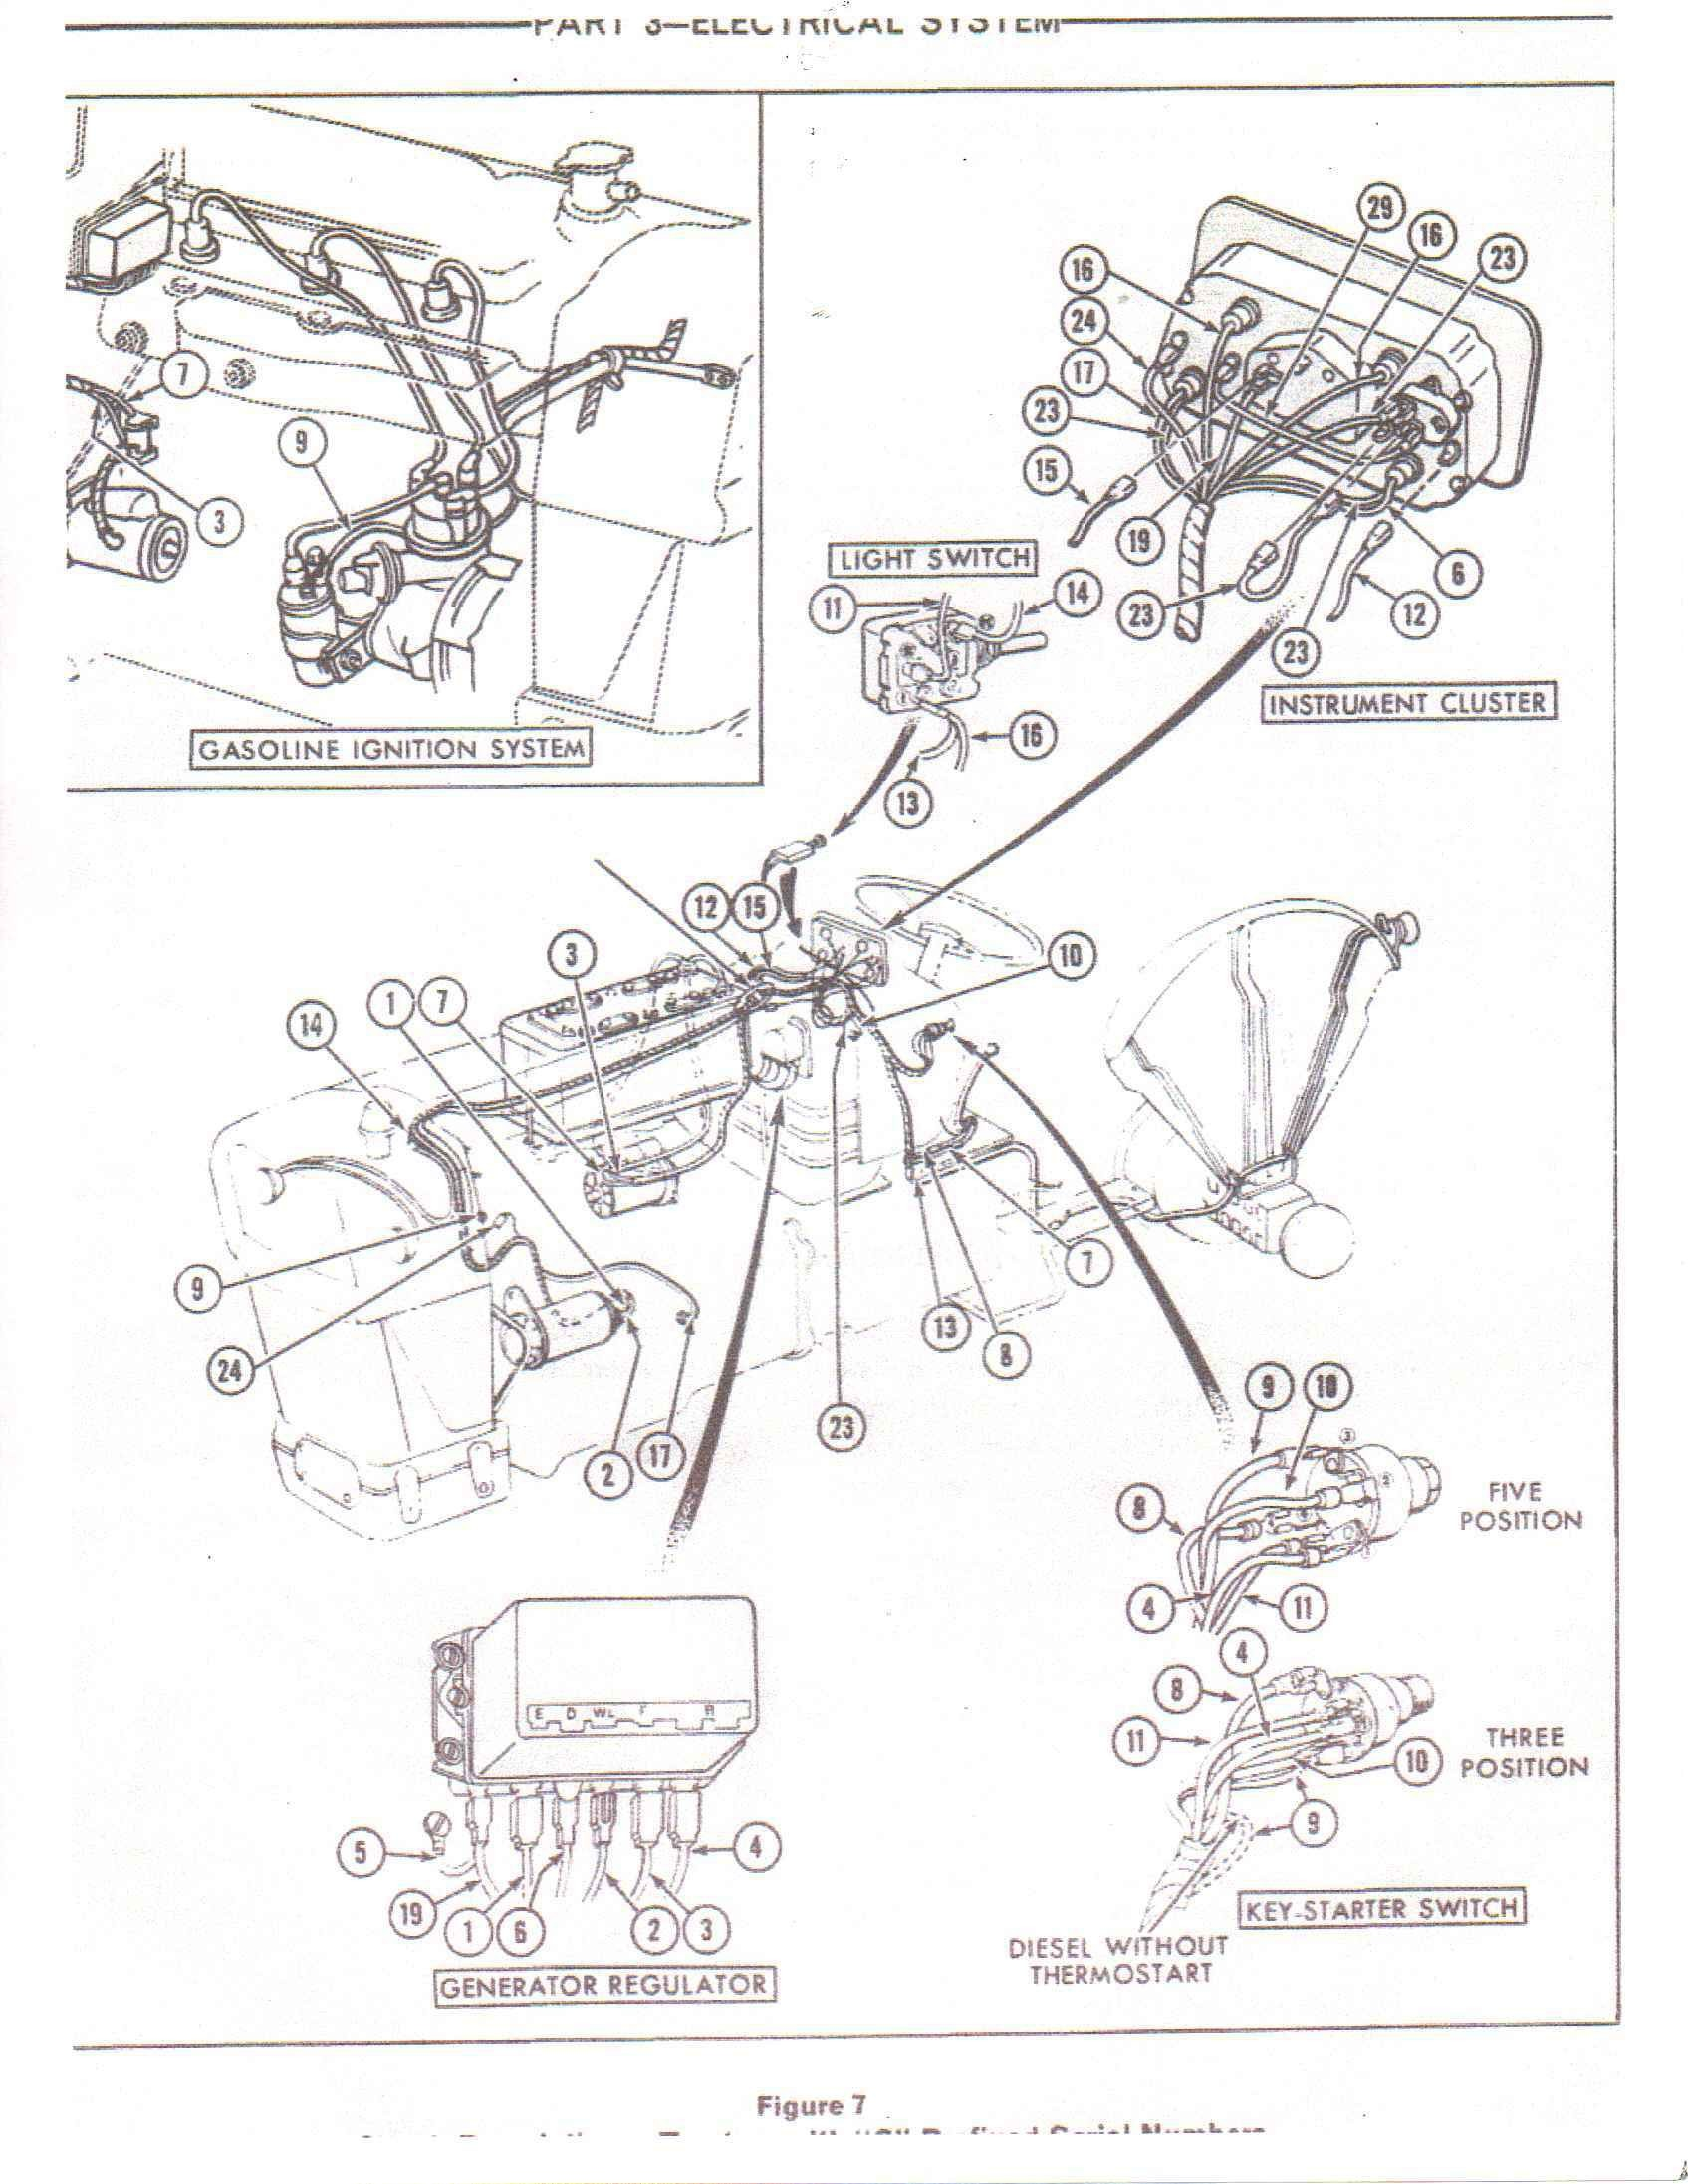 hight resolution of 5000 ford tractor electrical wiring diagram wiring diagram hub ford 5000 tractor loader diagram ford 3600 tractor parts diagram